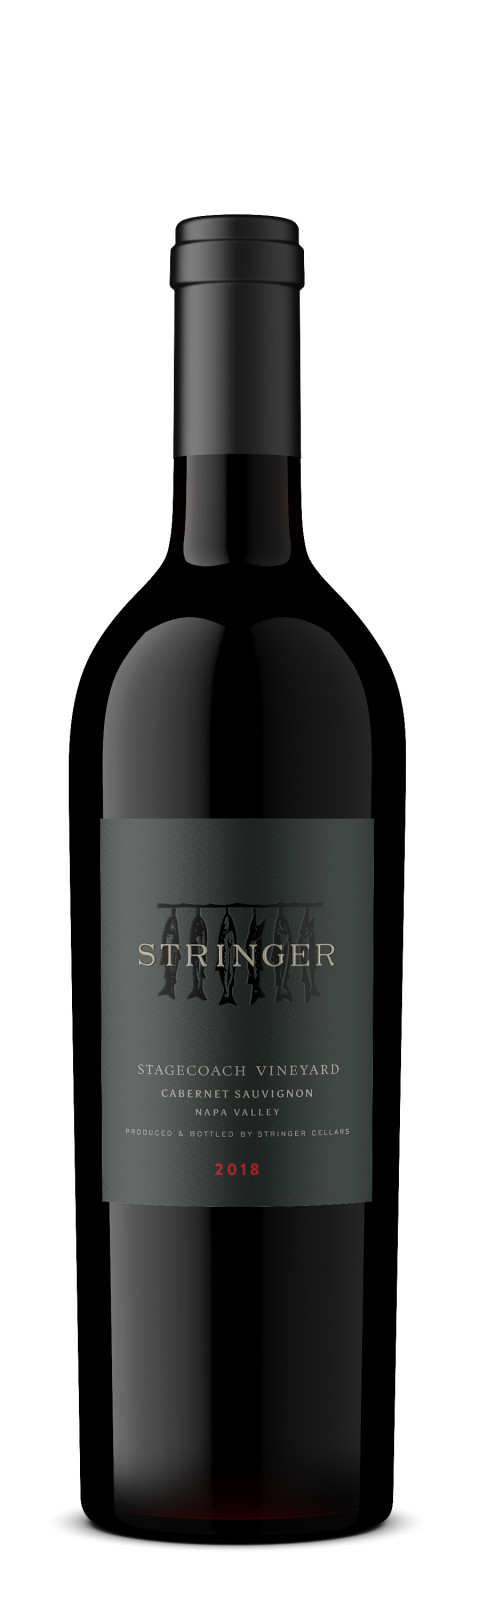 Stagecoach Vineyard Cabernet Sauvignon 2018 Napa Valley - Stringer Cellars